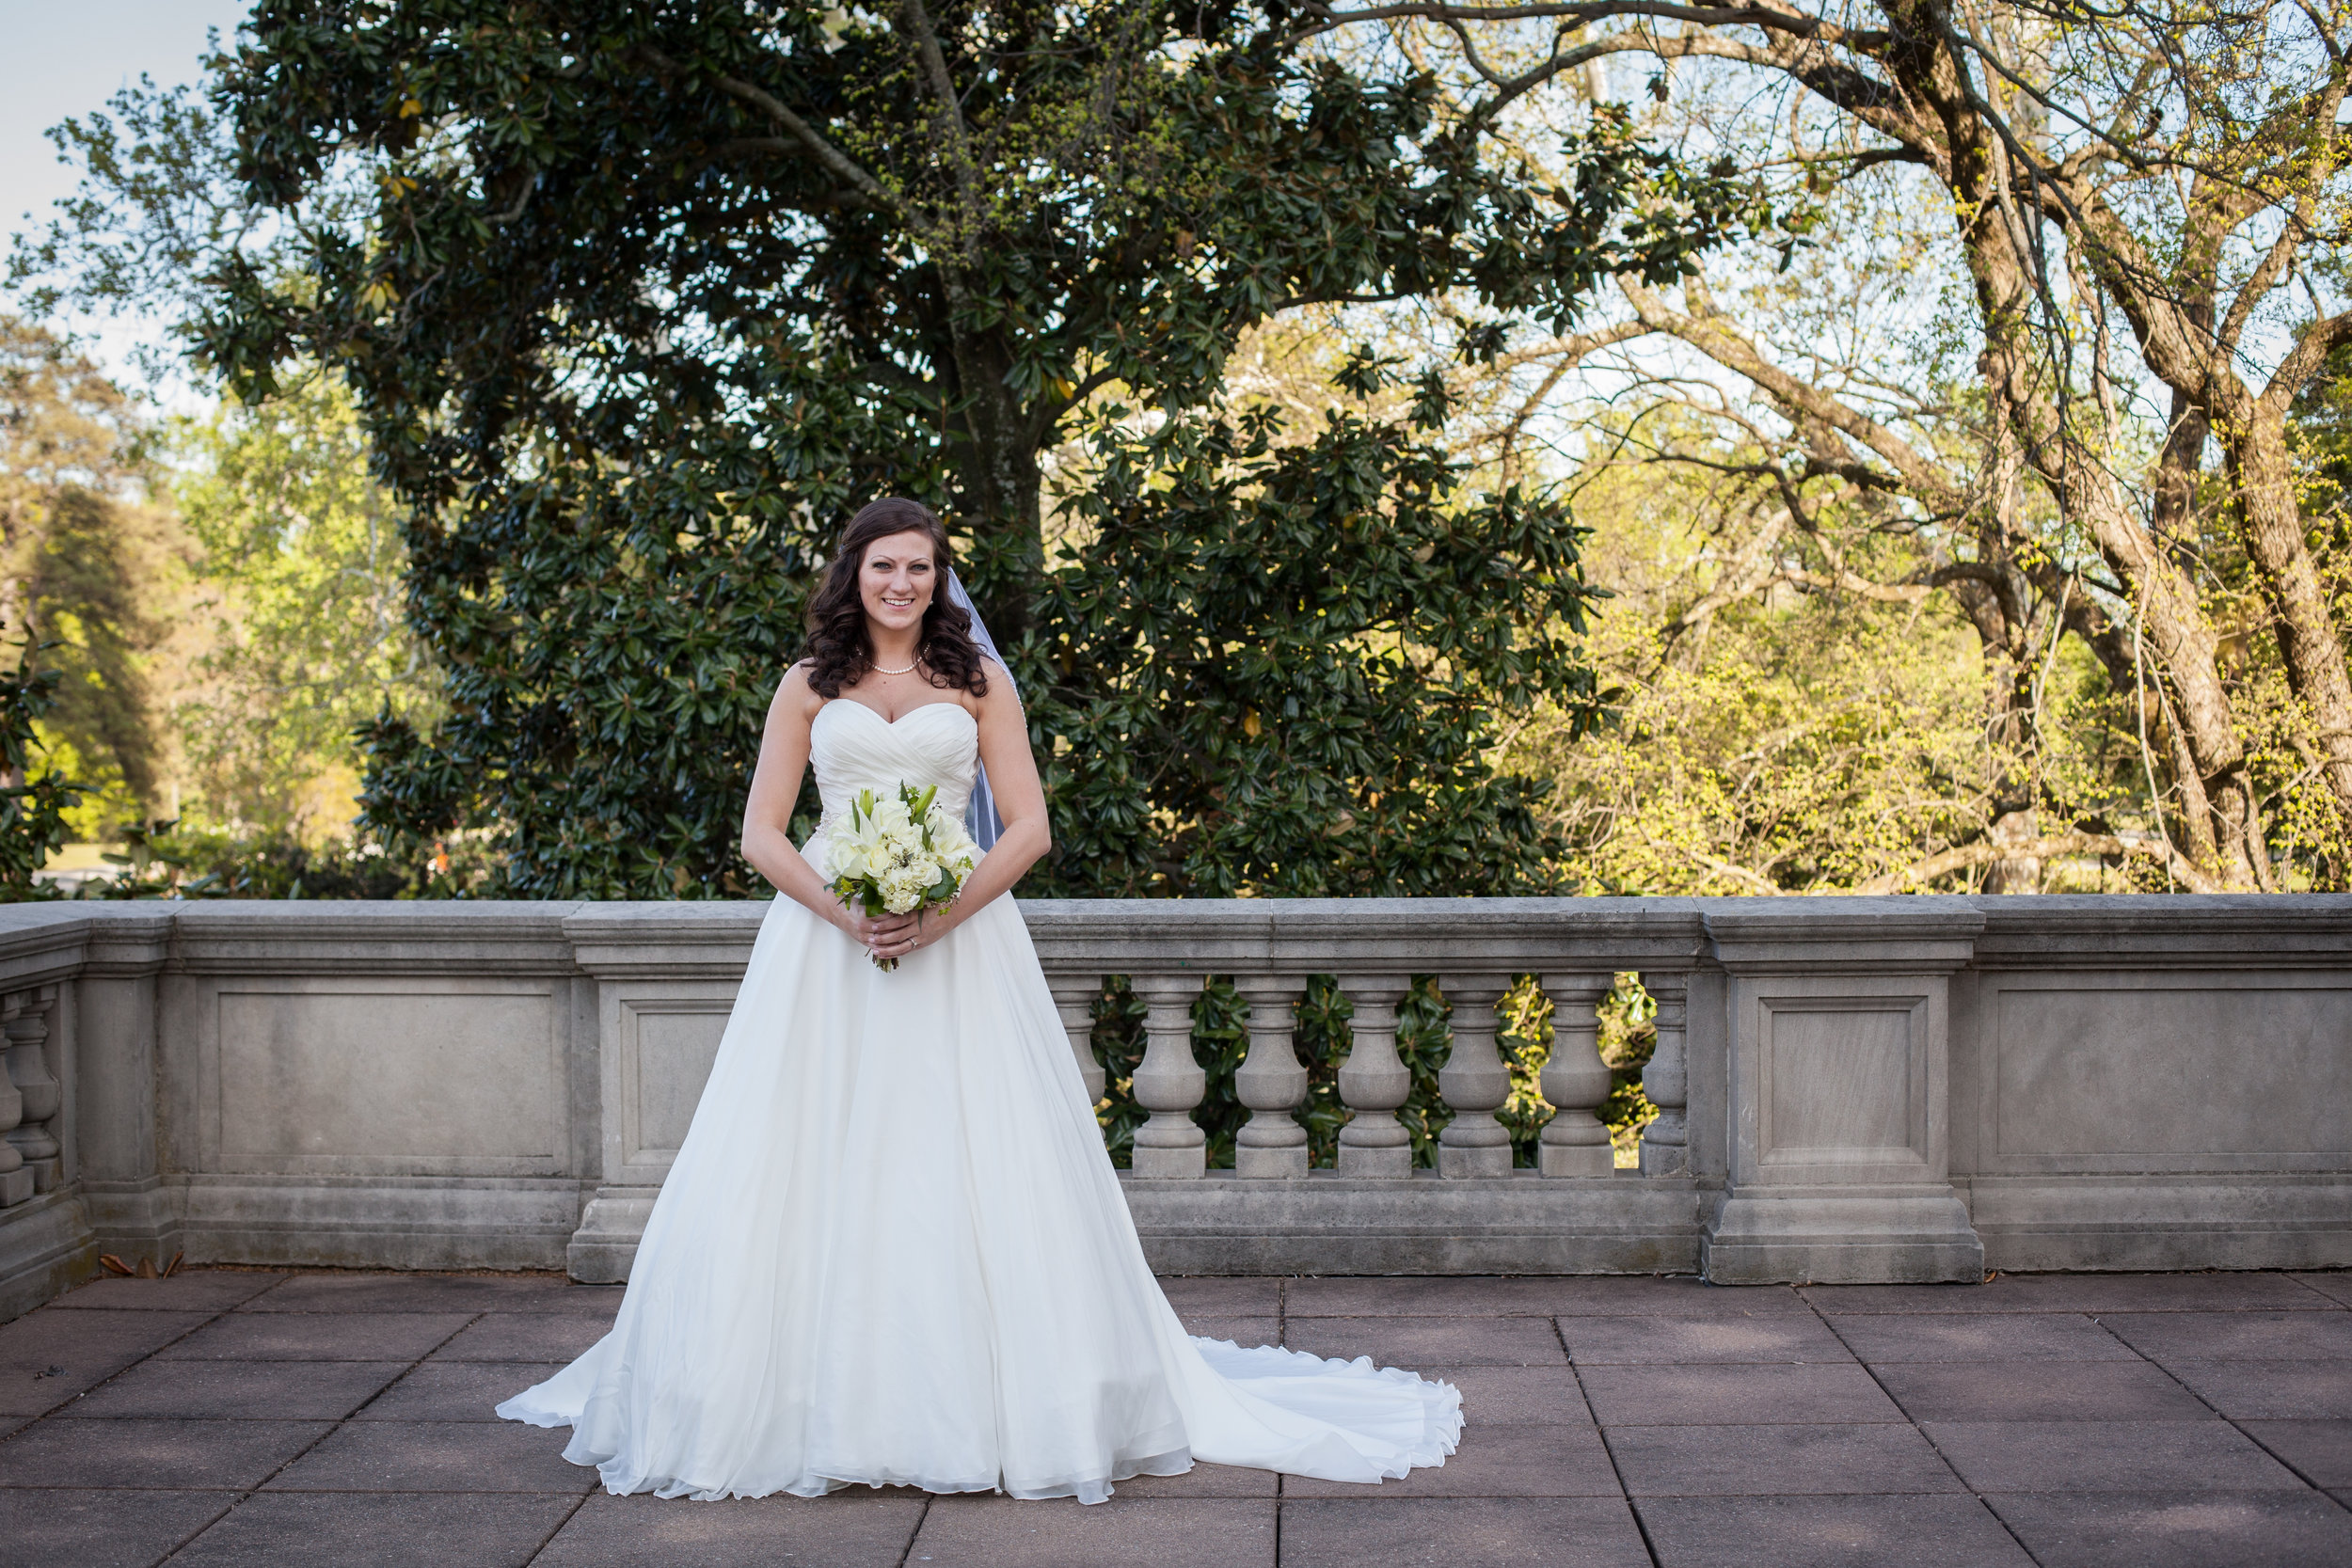 Carillon-Richmond-Va-Bride.jpg